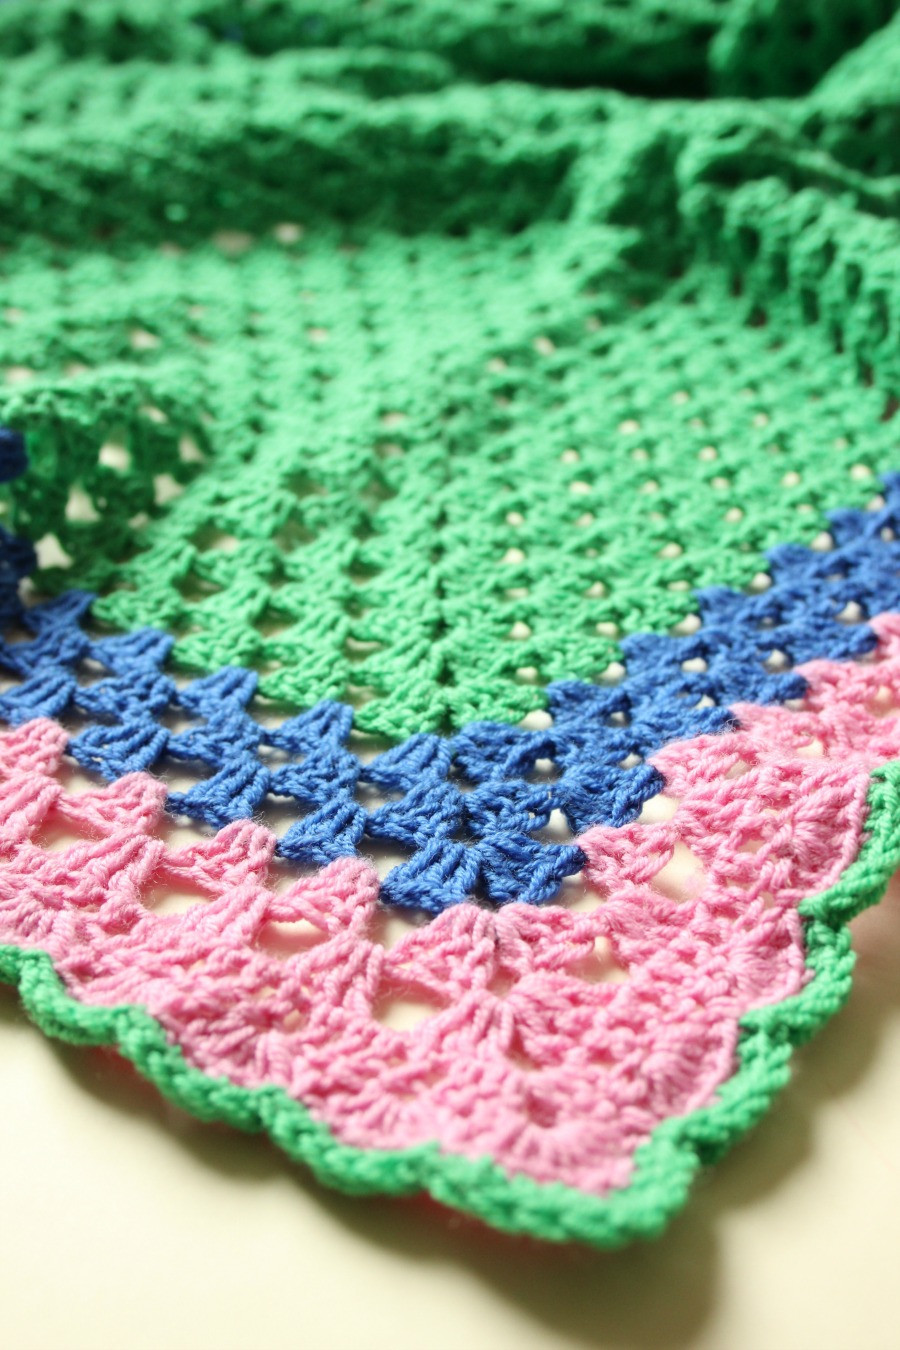 Crochet Triangle Shawl Elegant Another Granny Triangle Shawl – Zeens and Roger Of Brilliant 46 Pictures Crochet Triangle Shawl